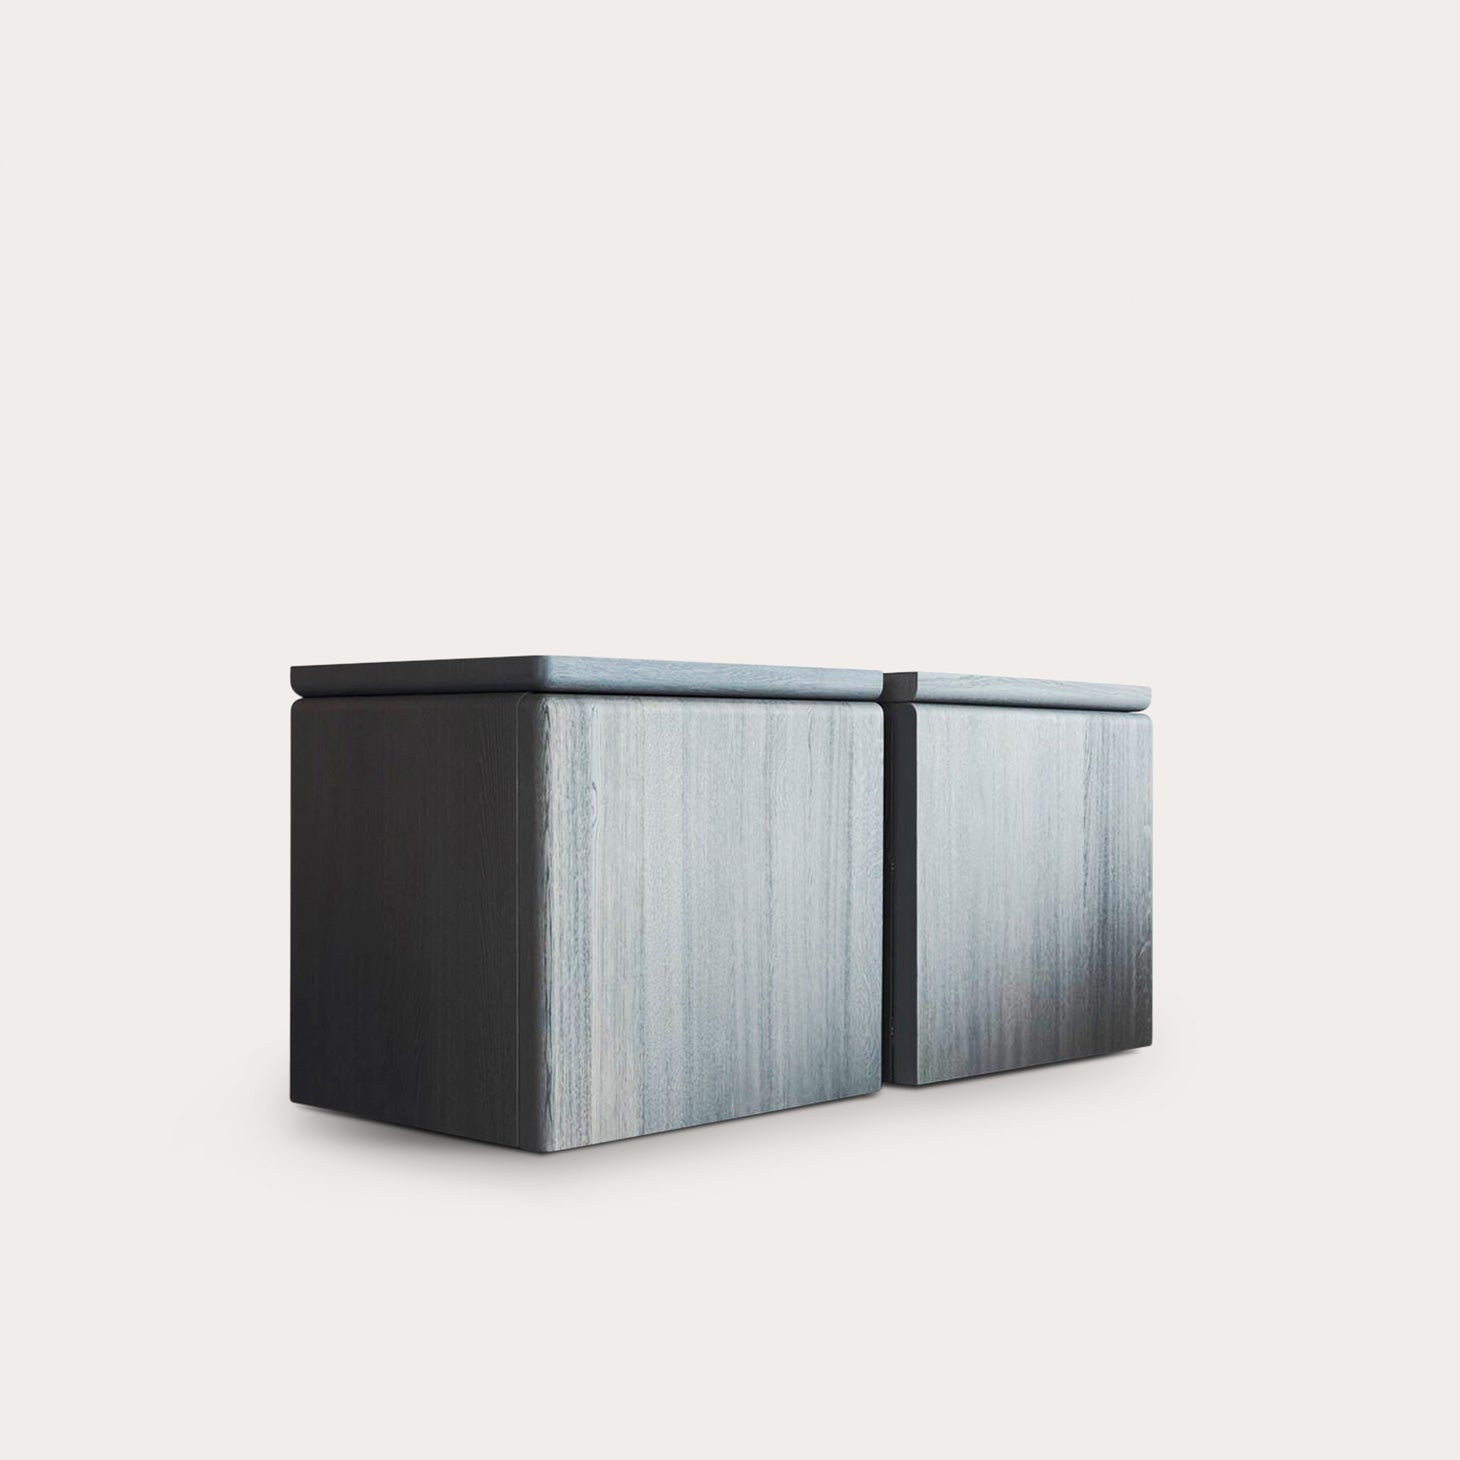 Kast 001 Storage Thomas Haarmann Designer Furniture Sku: 416-220-10166